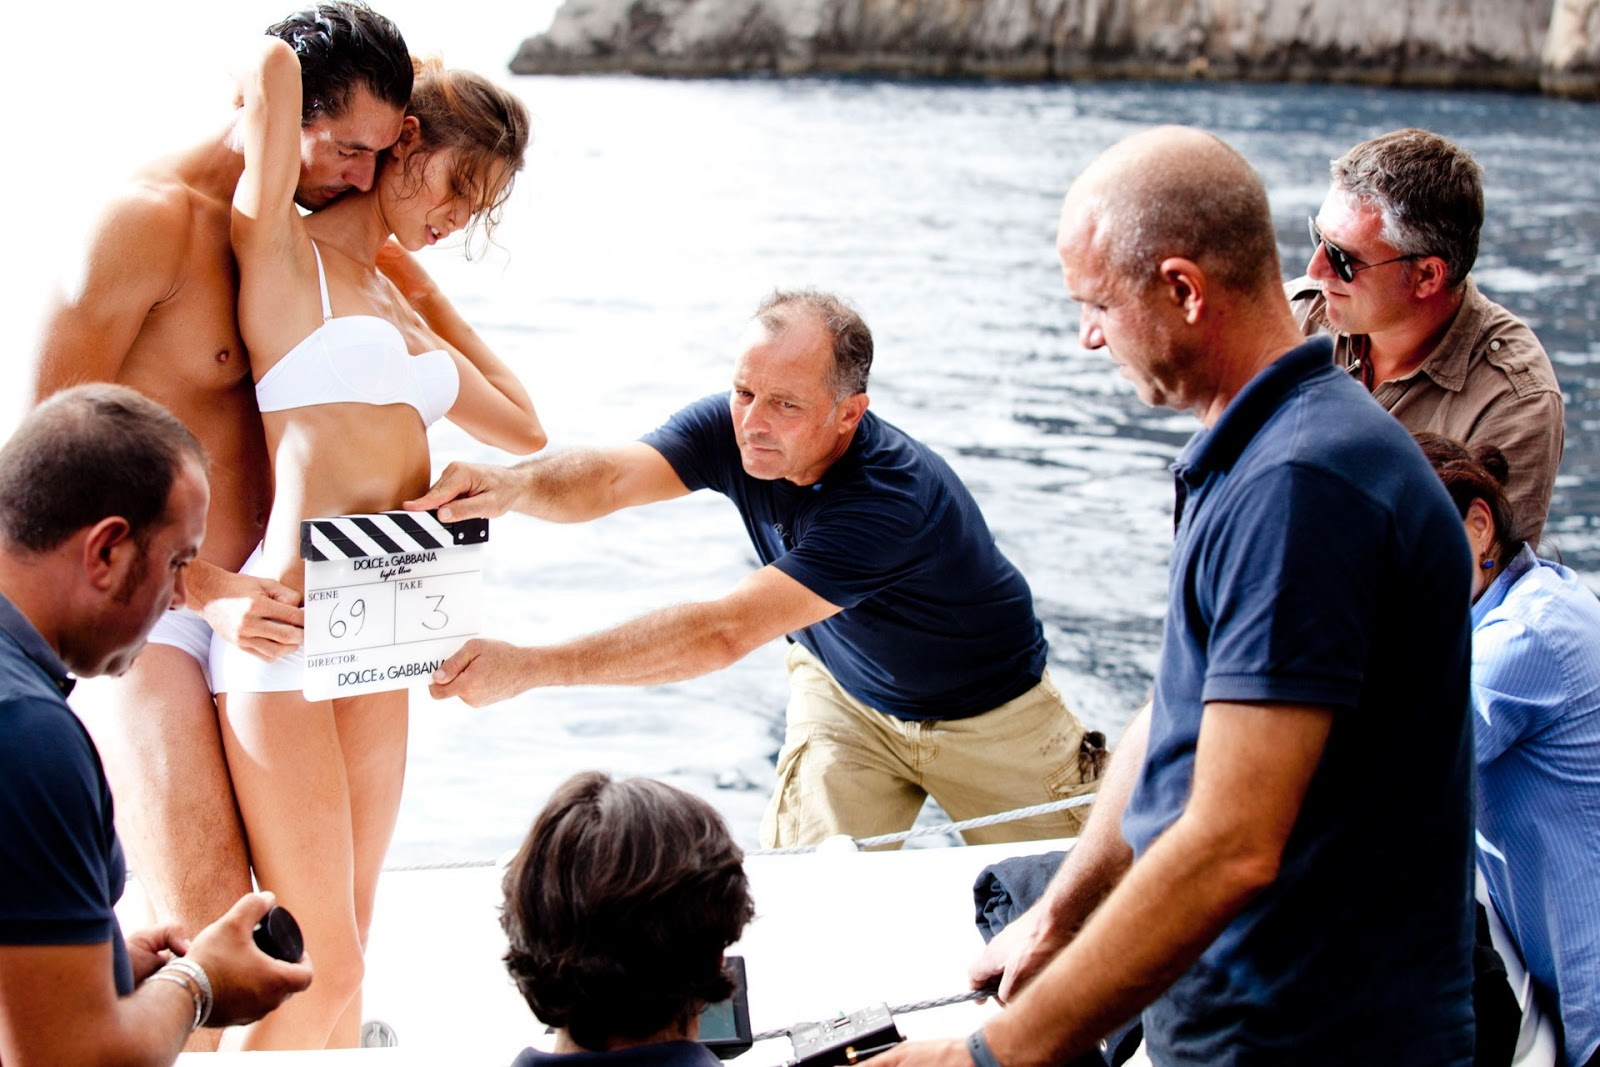 Behind the scene dolce gabbana light blue fragrance campaign behind the scene dolce gabbana light blue fragrance campaign david gandy bianca balti by mario testino mozeypictures Images